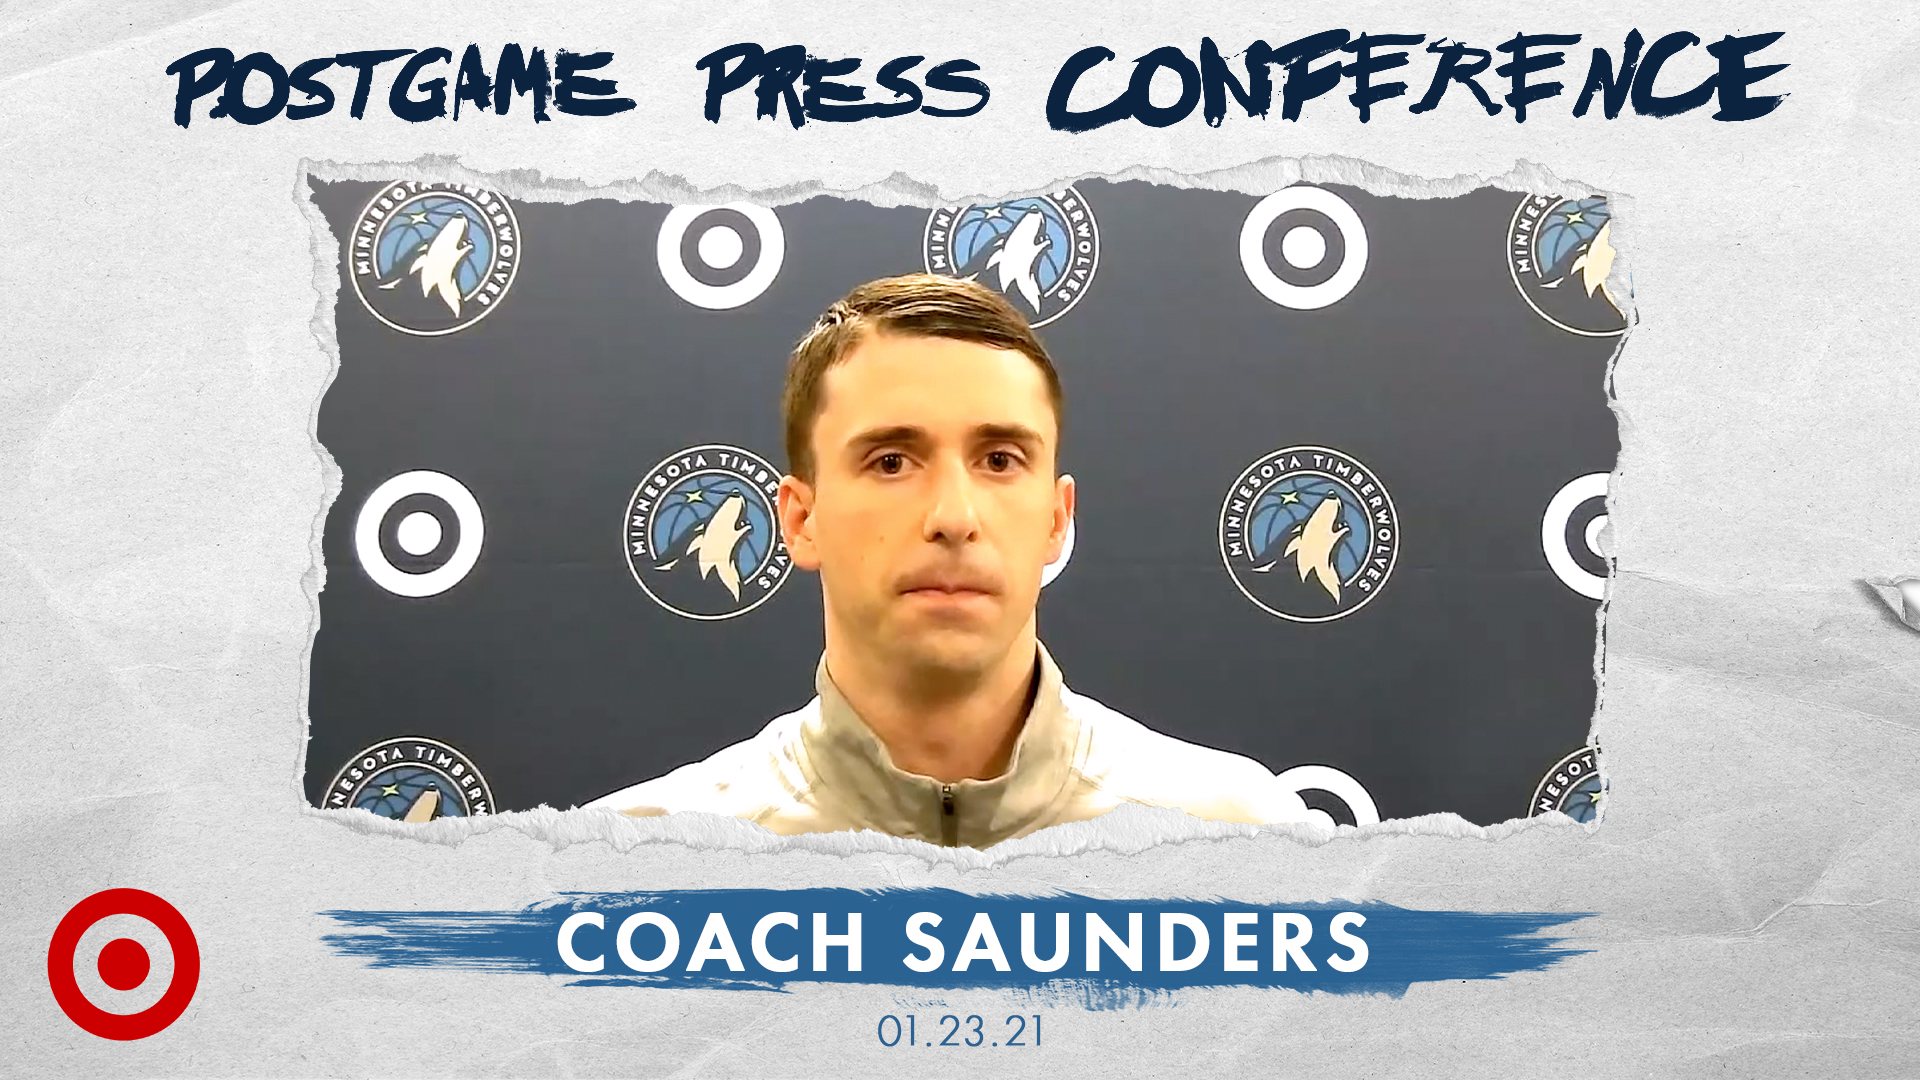 Coach Saunders Postgame Press Conference - January 23, 2021